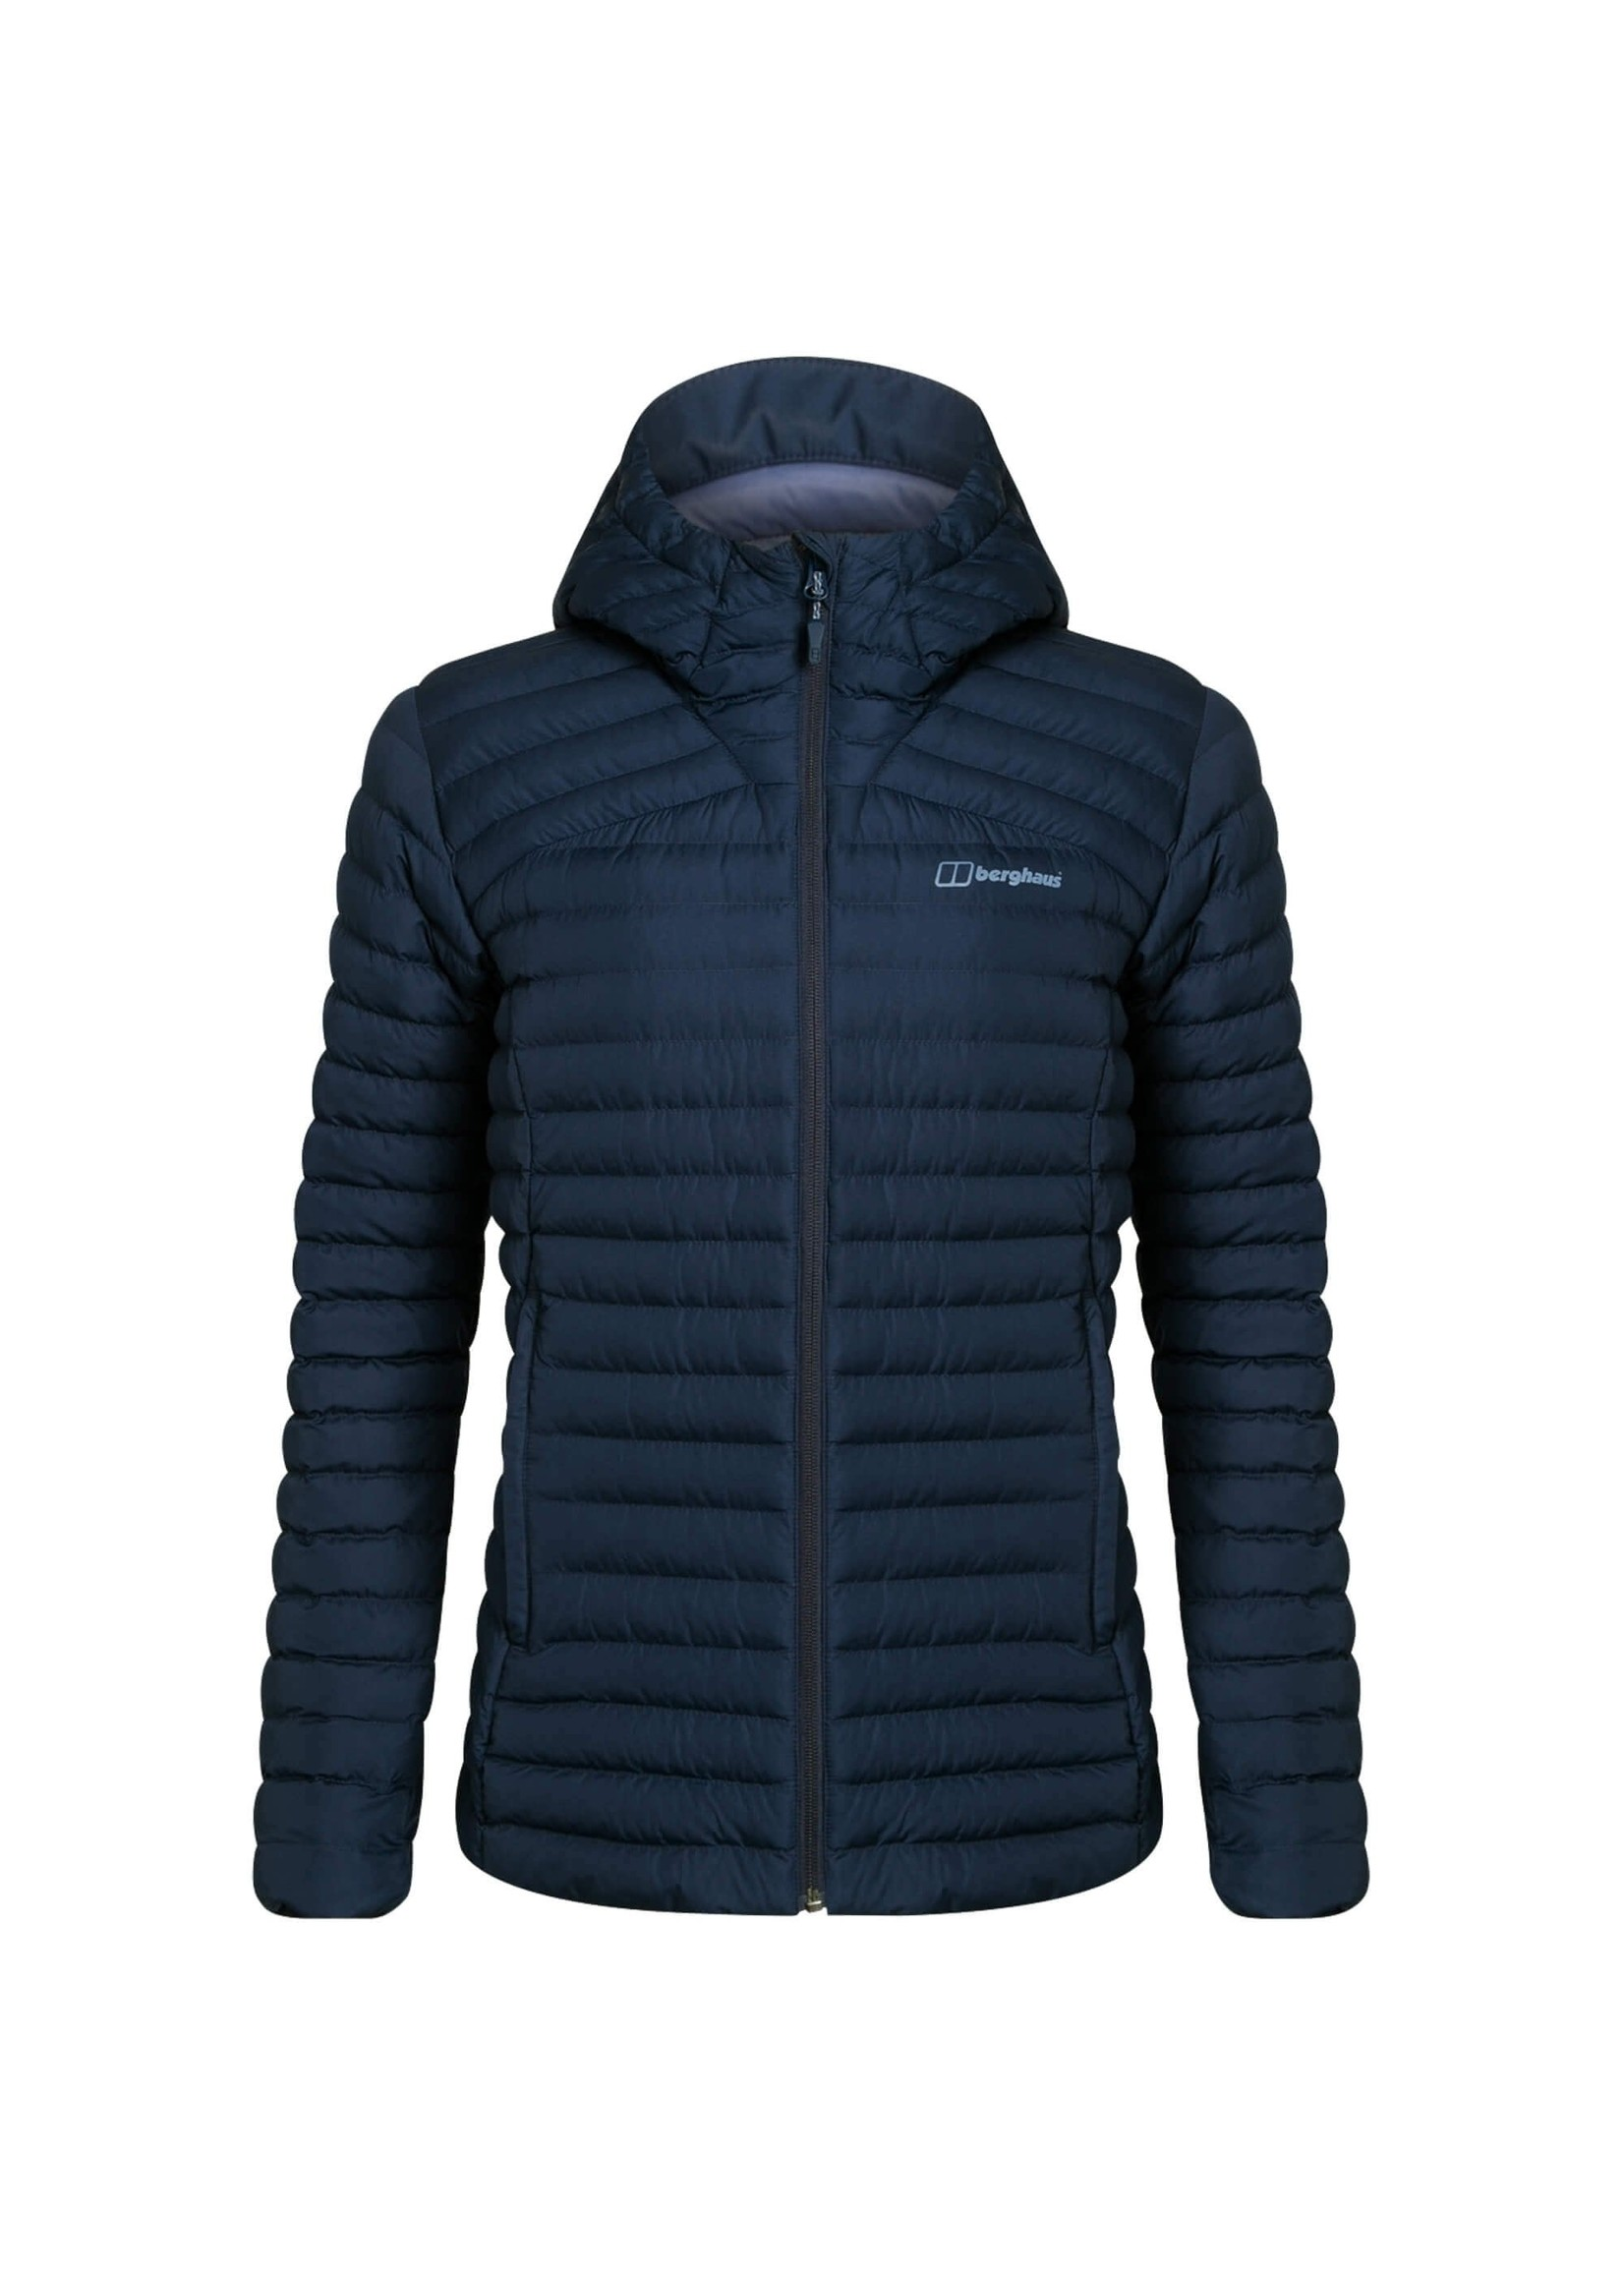 Berghaus Berghaus Nula Ladies Micro Synthetic Insulated Jacket (2020)